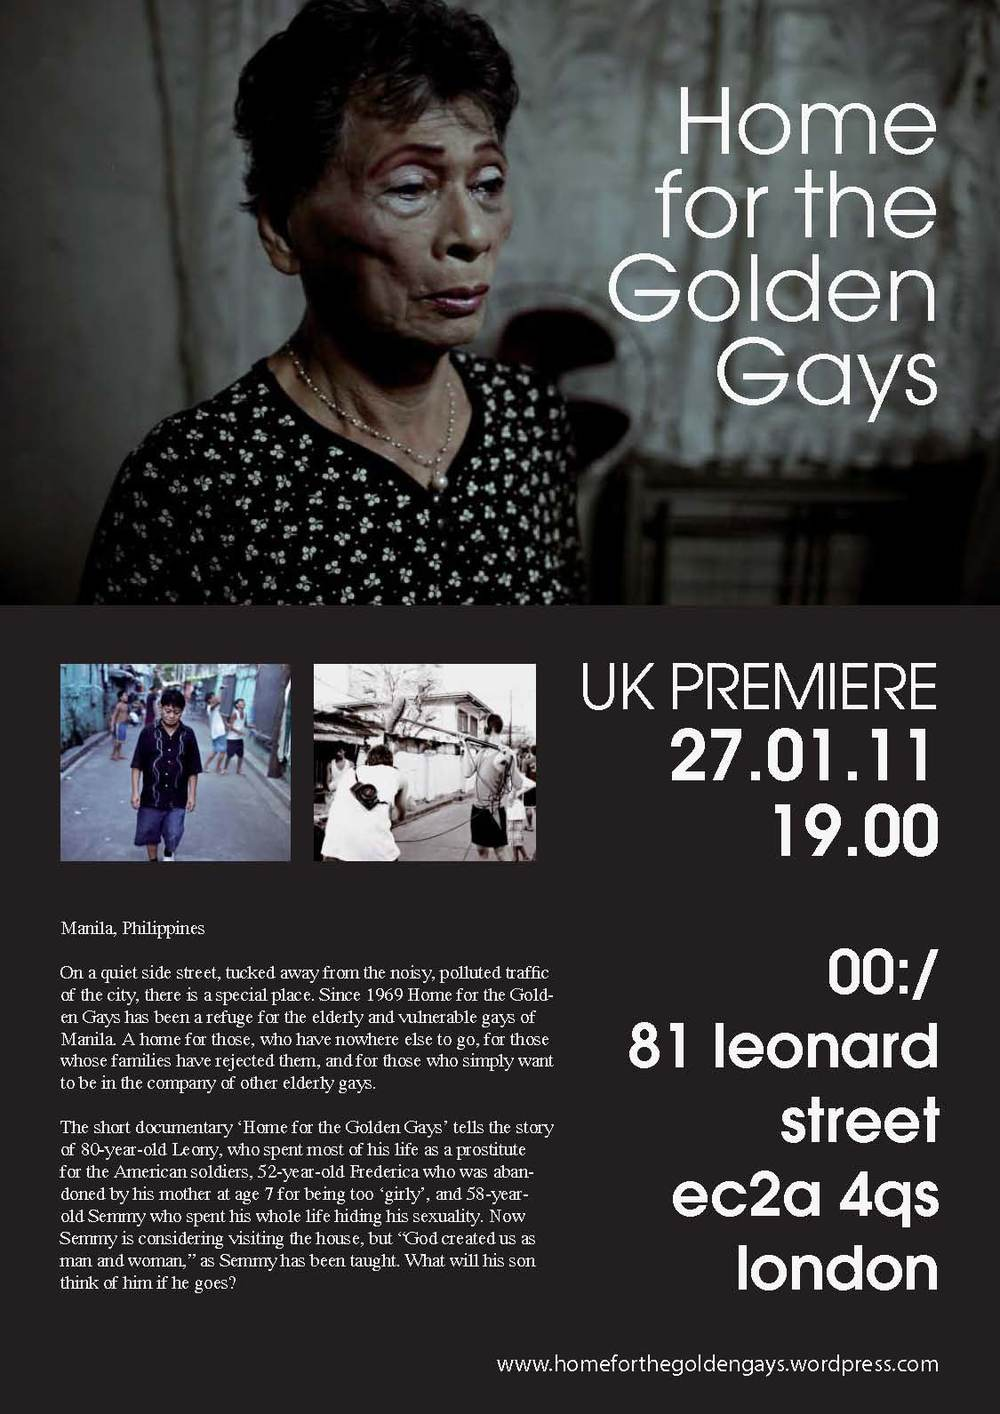 home-for-the-golden-gays-uk-premiere-invite.jpg